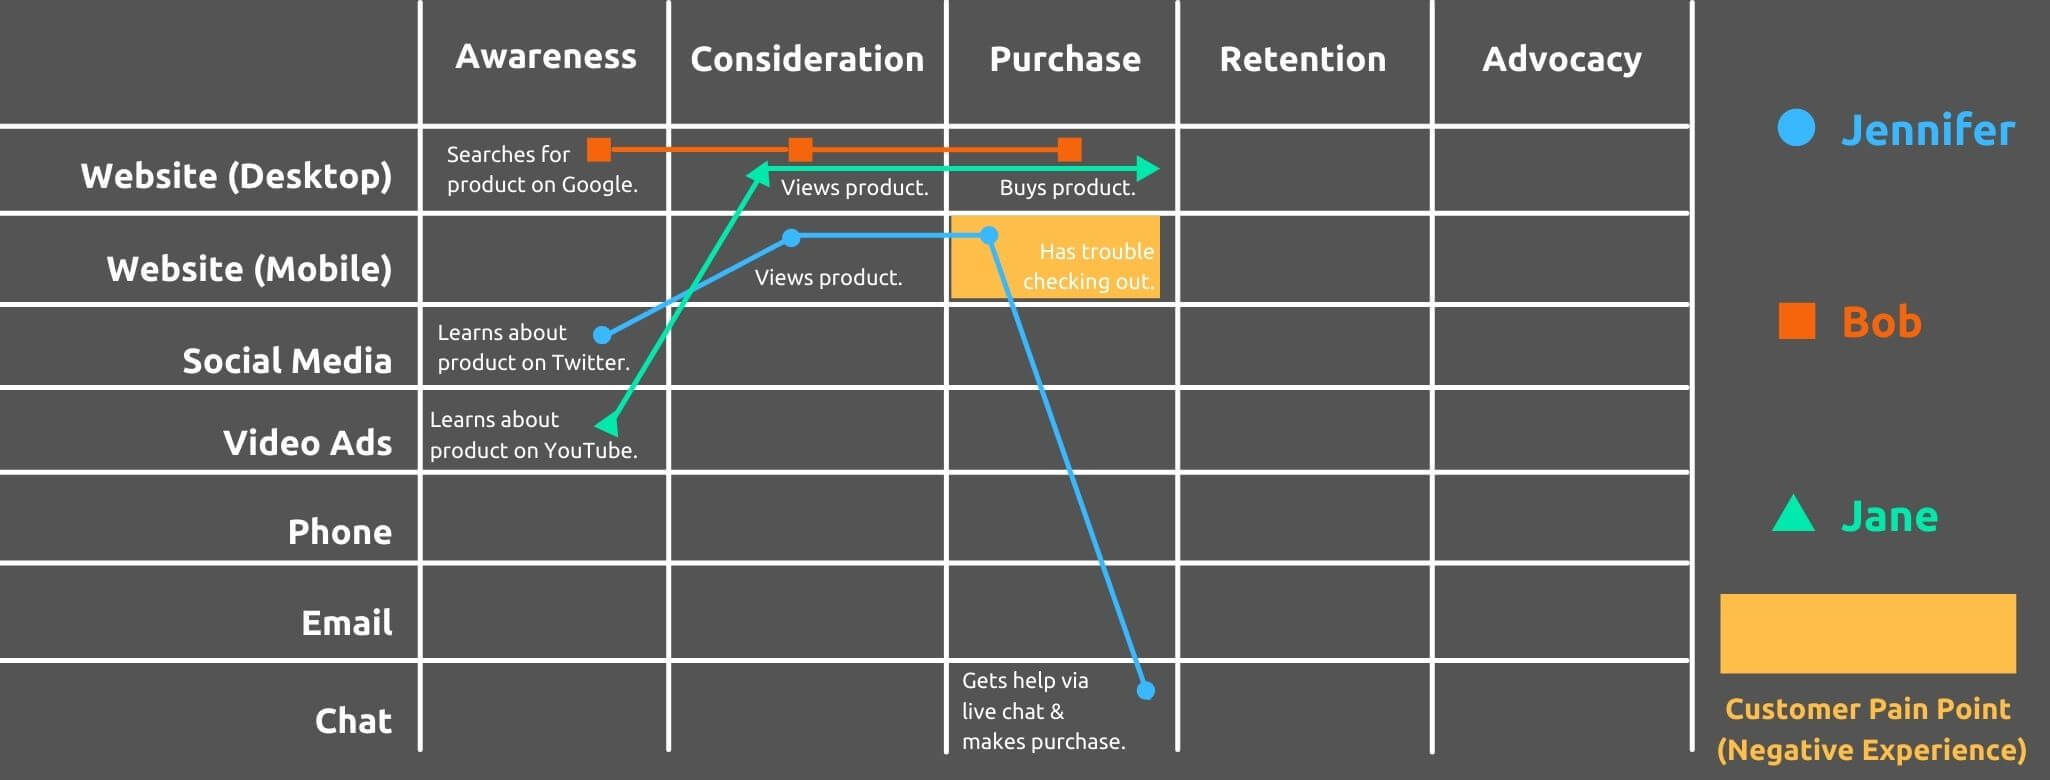 Identify Pain Points - How to Create a Customer Journey Map - Replyco Helpdesk Software for eCommerce